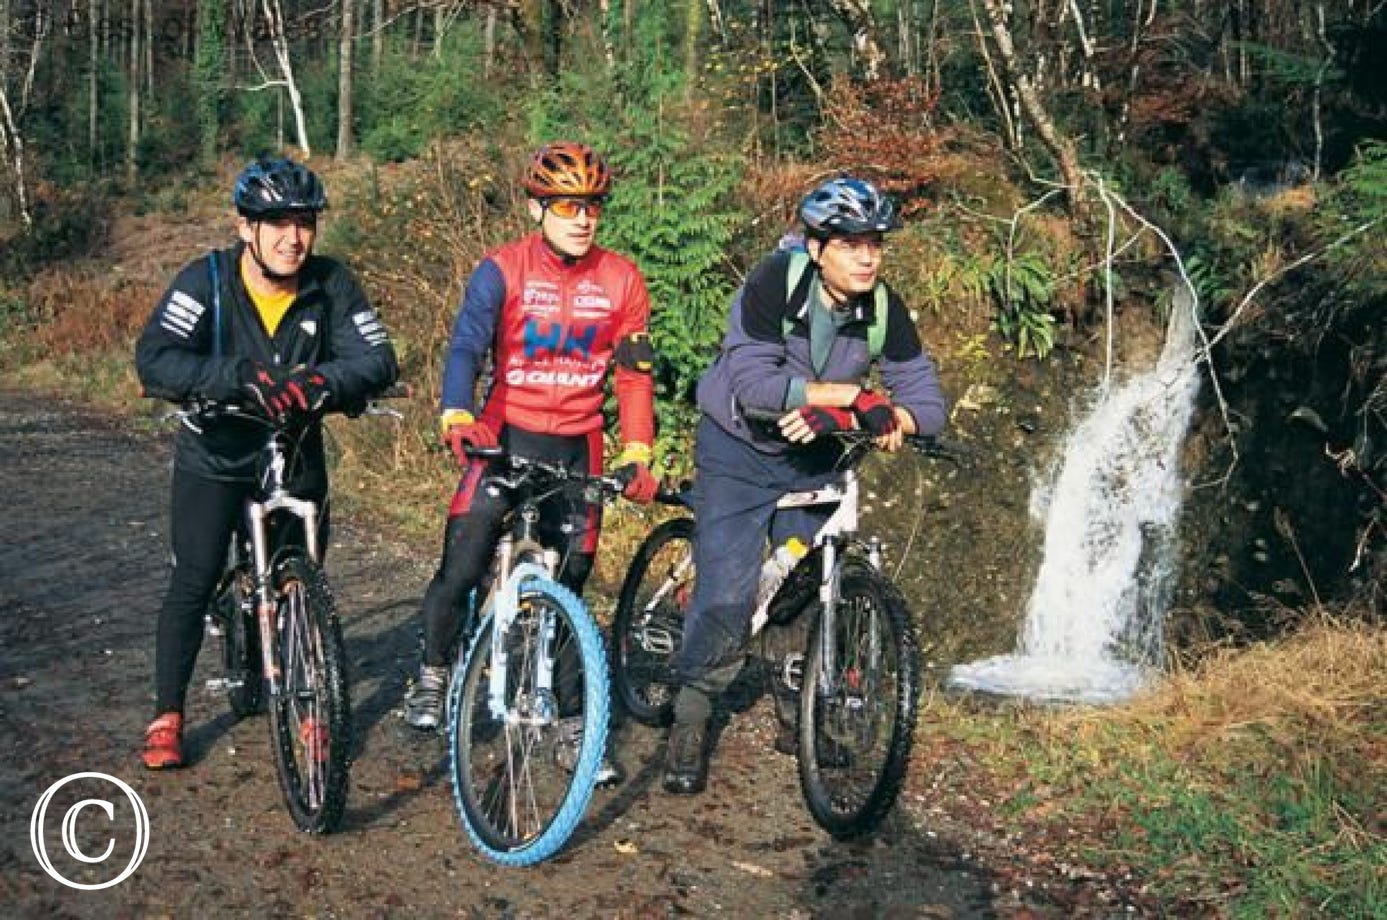 Coed y Brenin Mountain Biking Centre offers another great day out